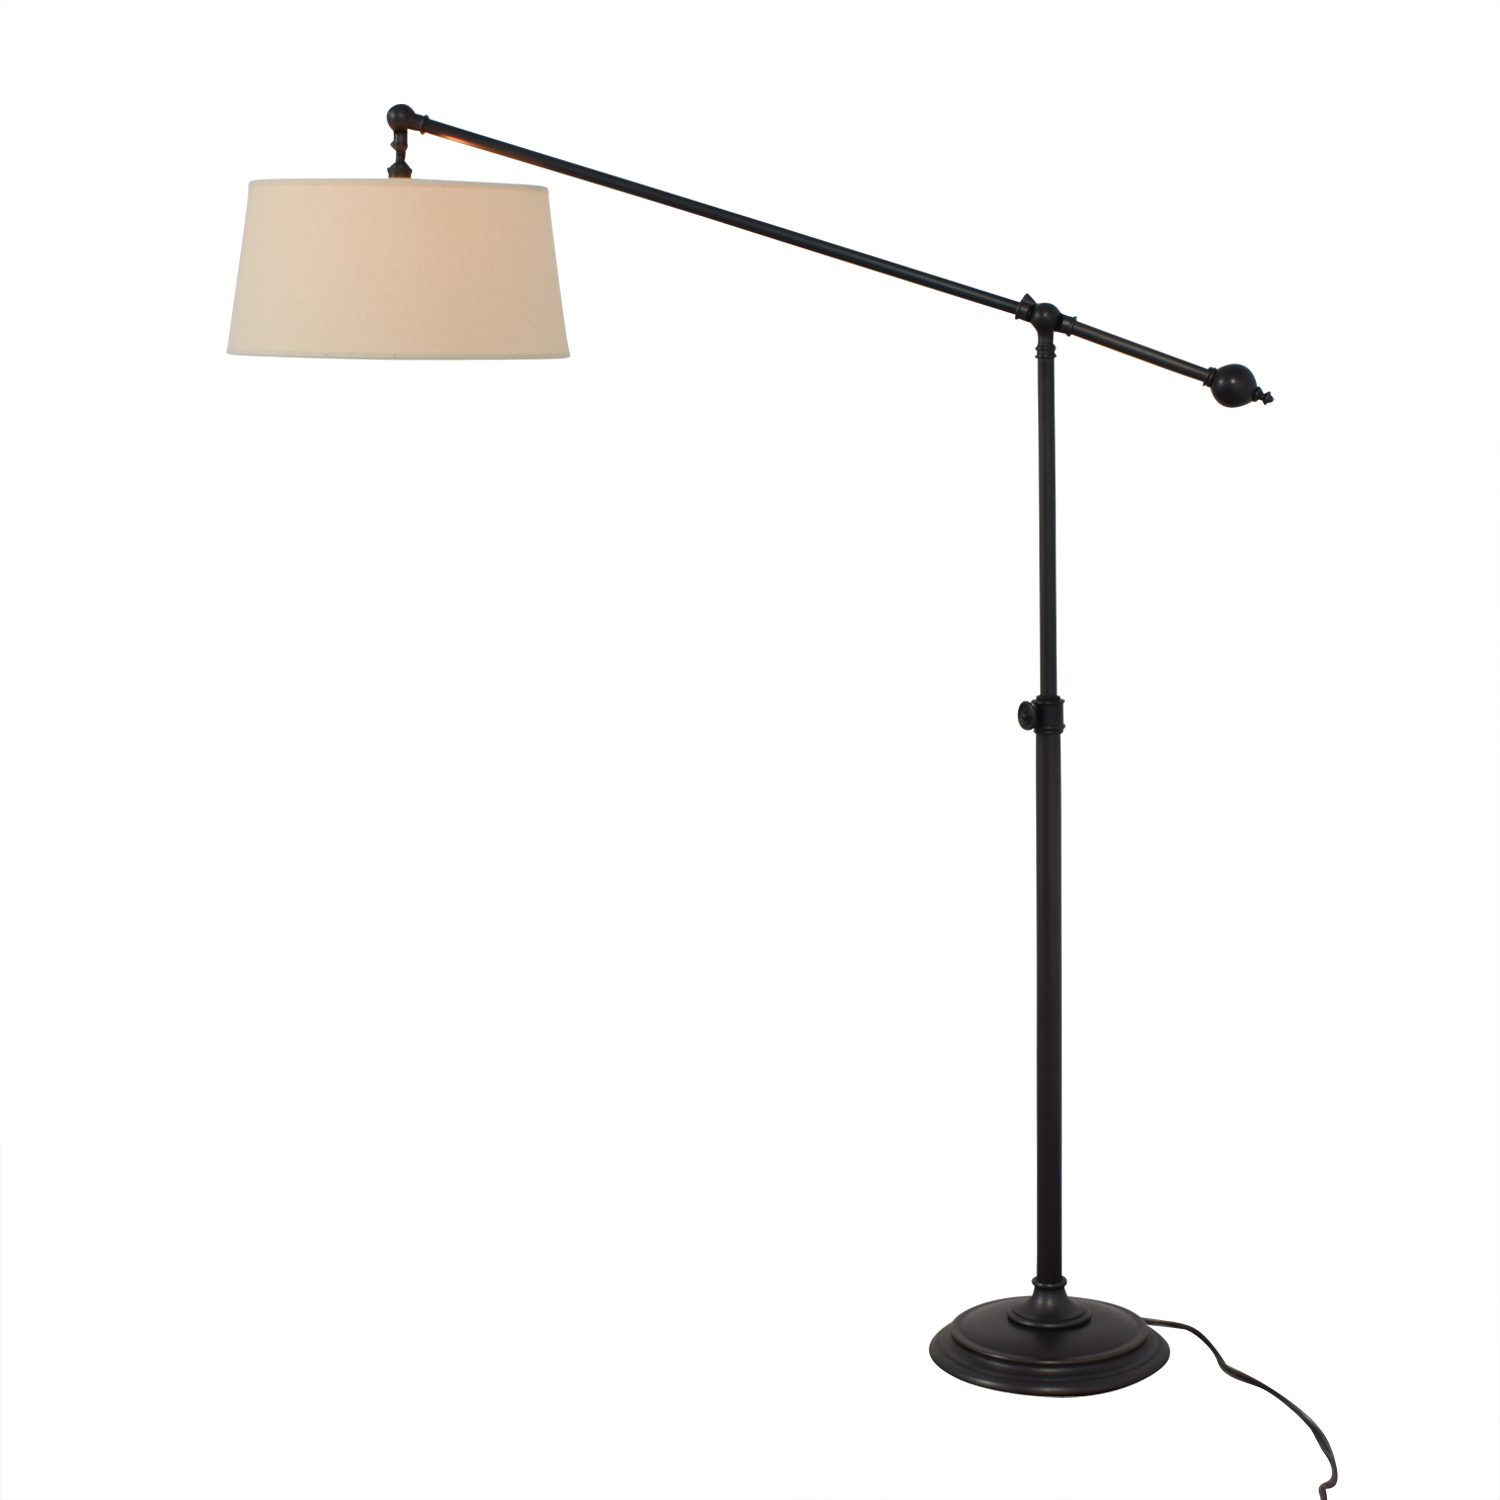 Pottery Barn Floor Lamp sale